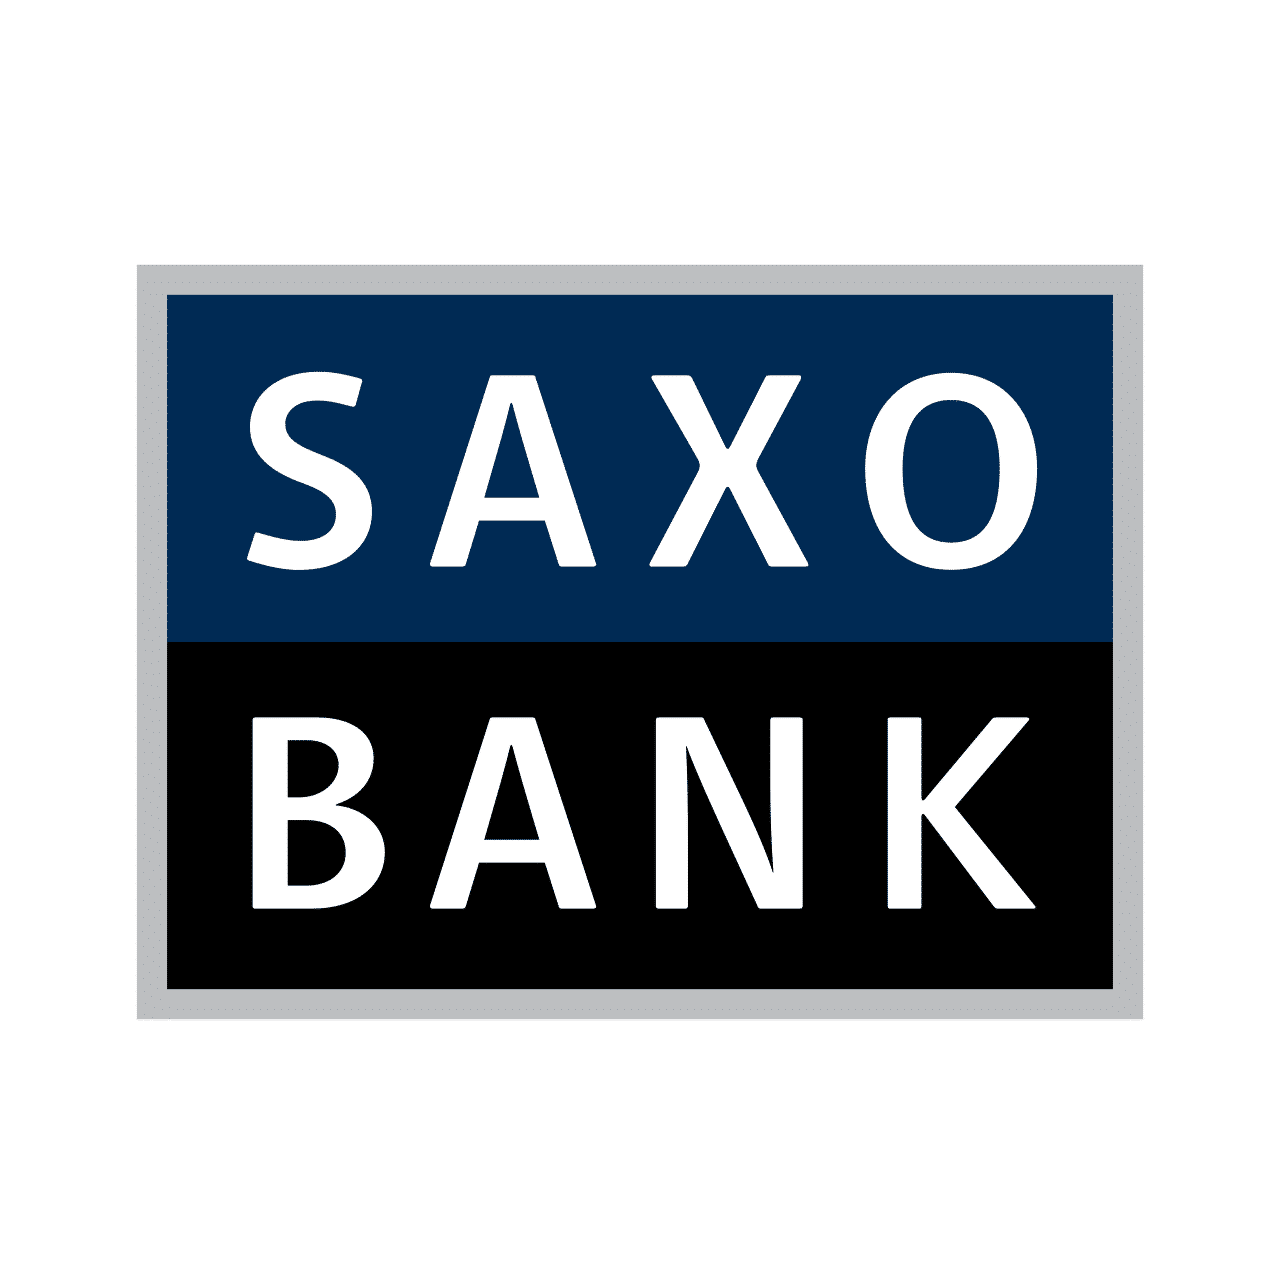 Saxo bank forex rates